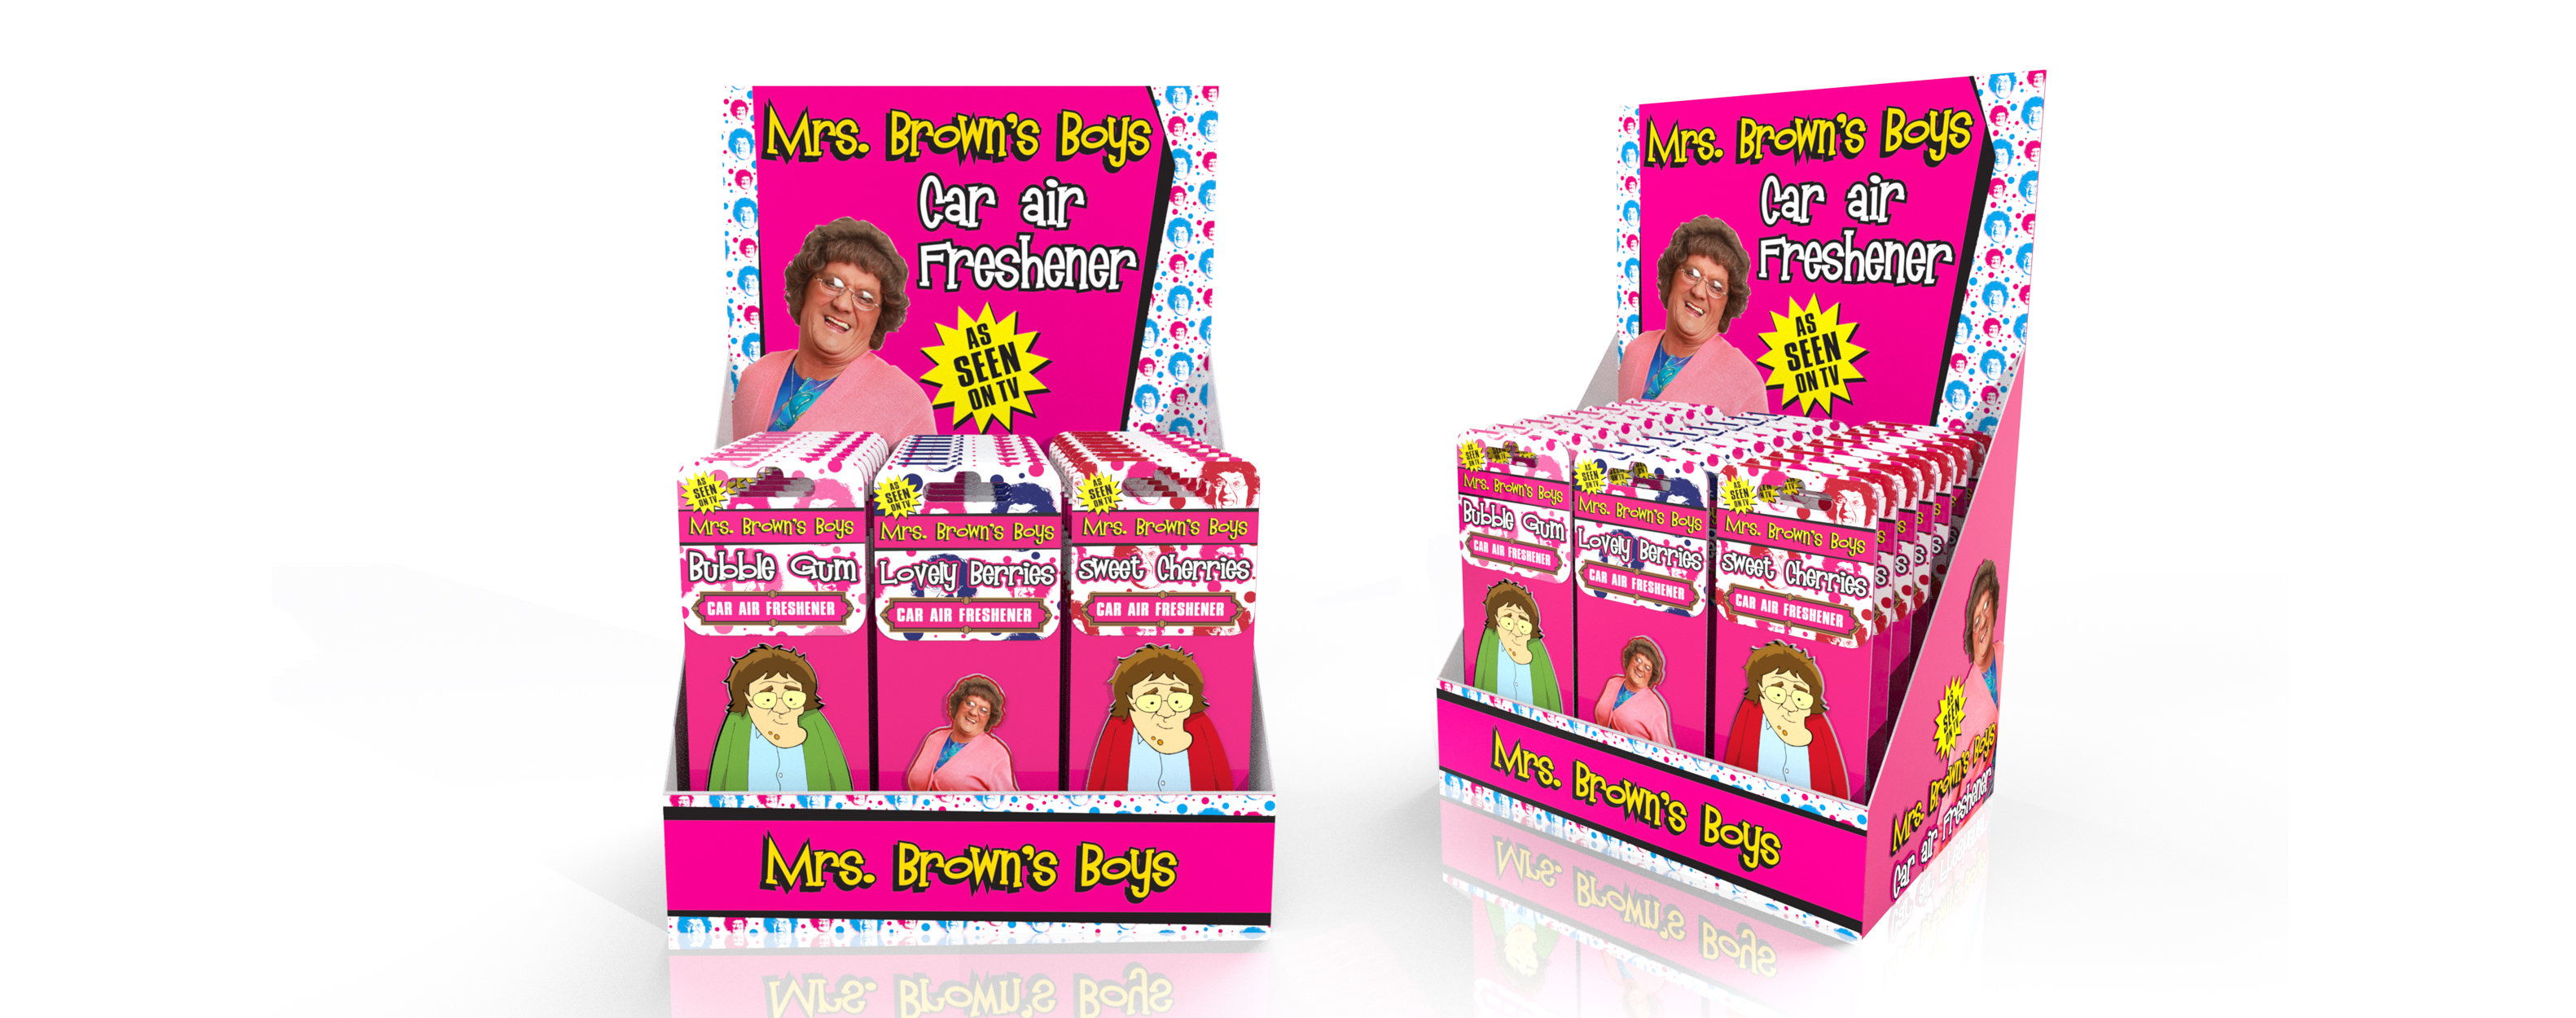 Mrs Browns Boys Air Freshener 3D CAD CDU Design Visuals print graphic designer